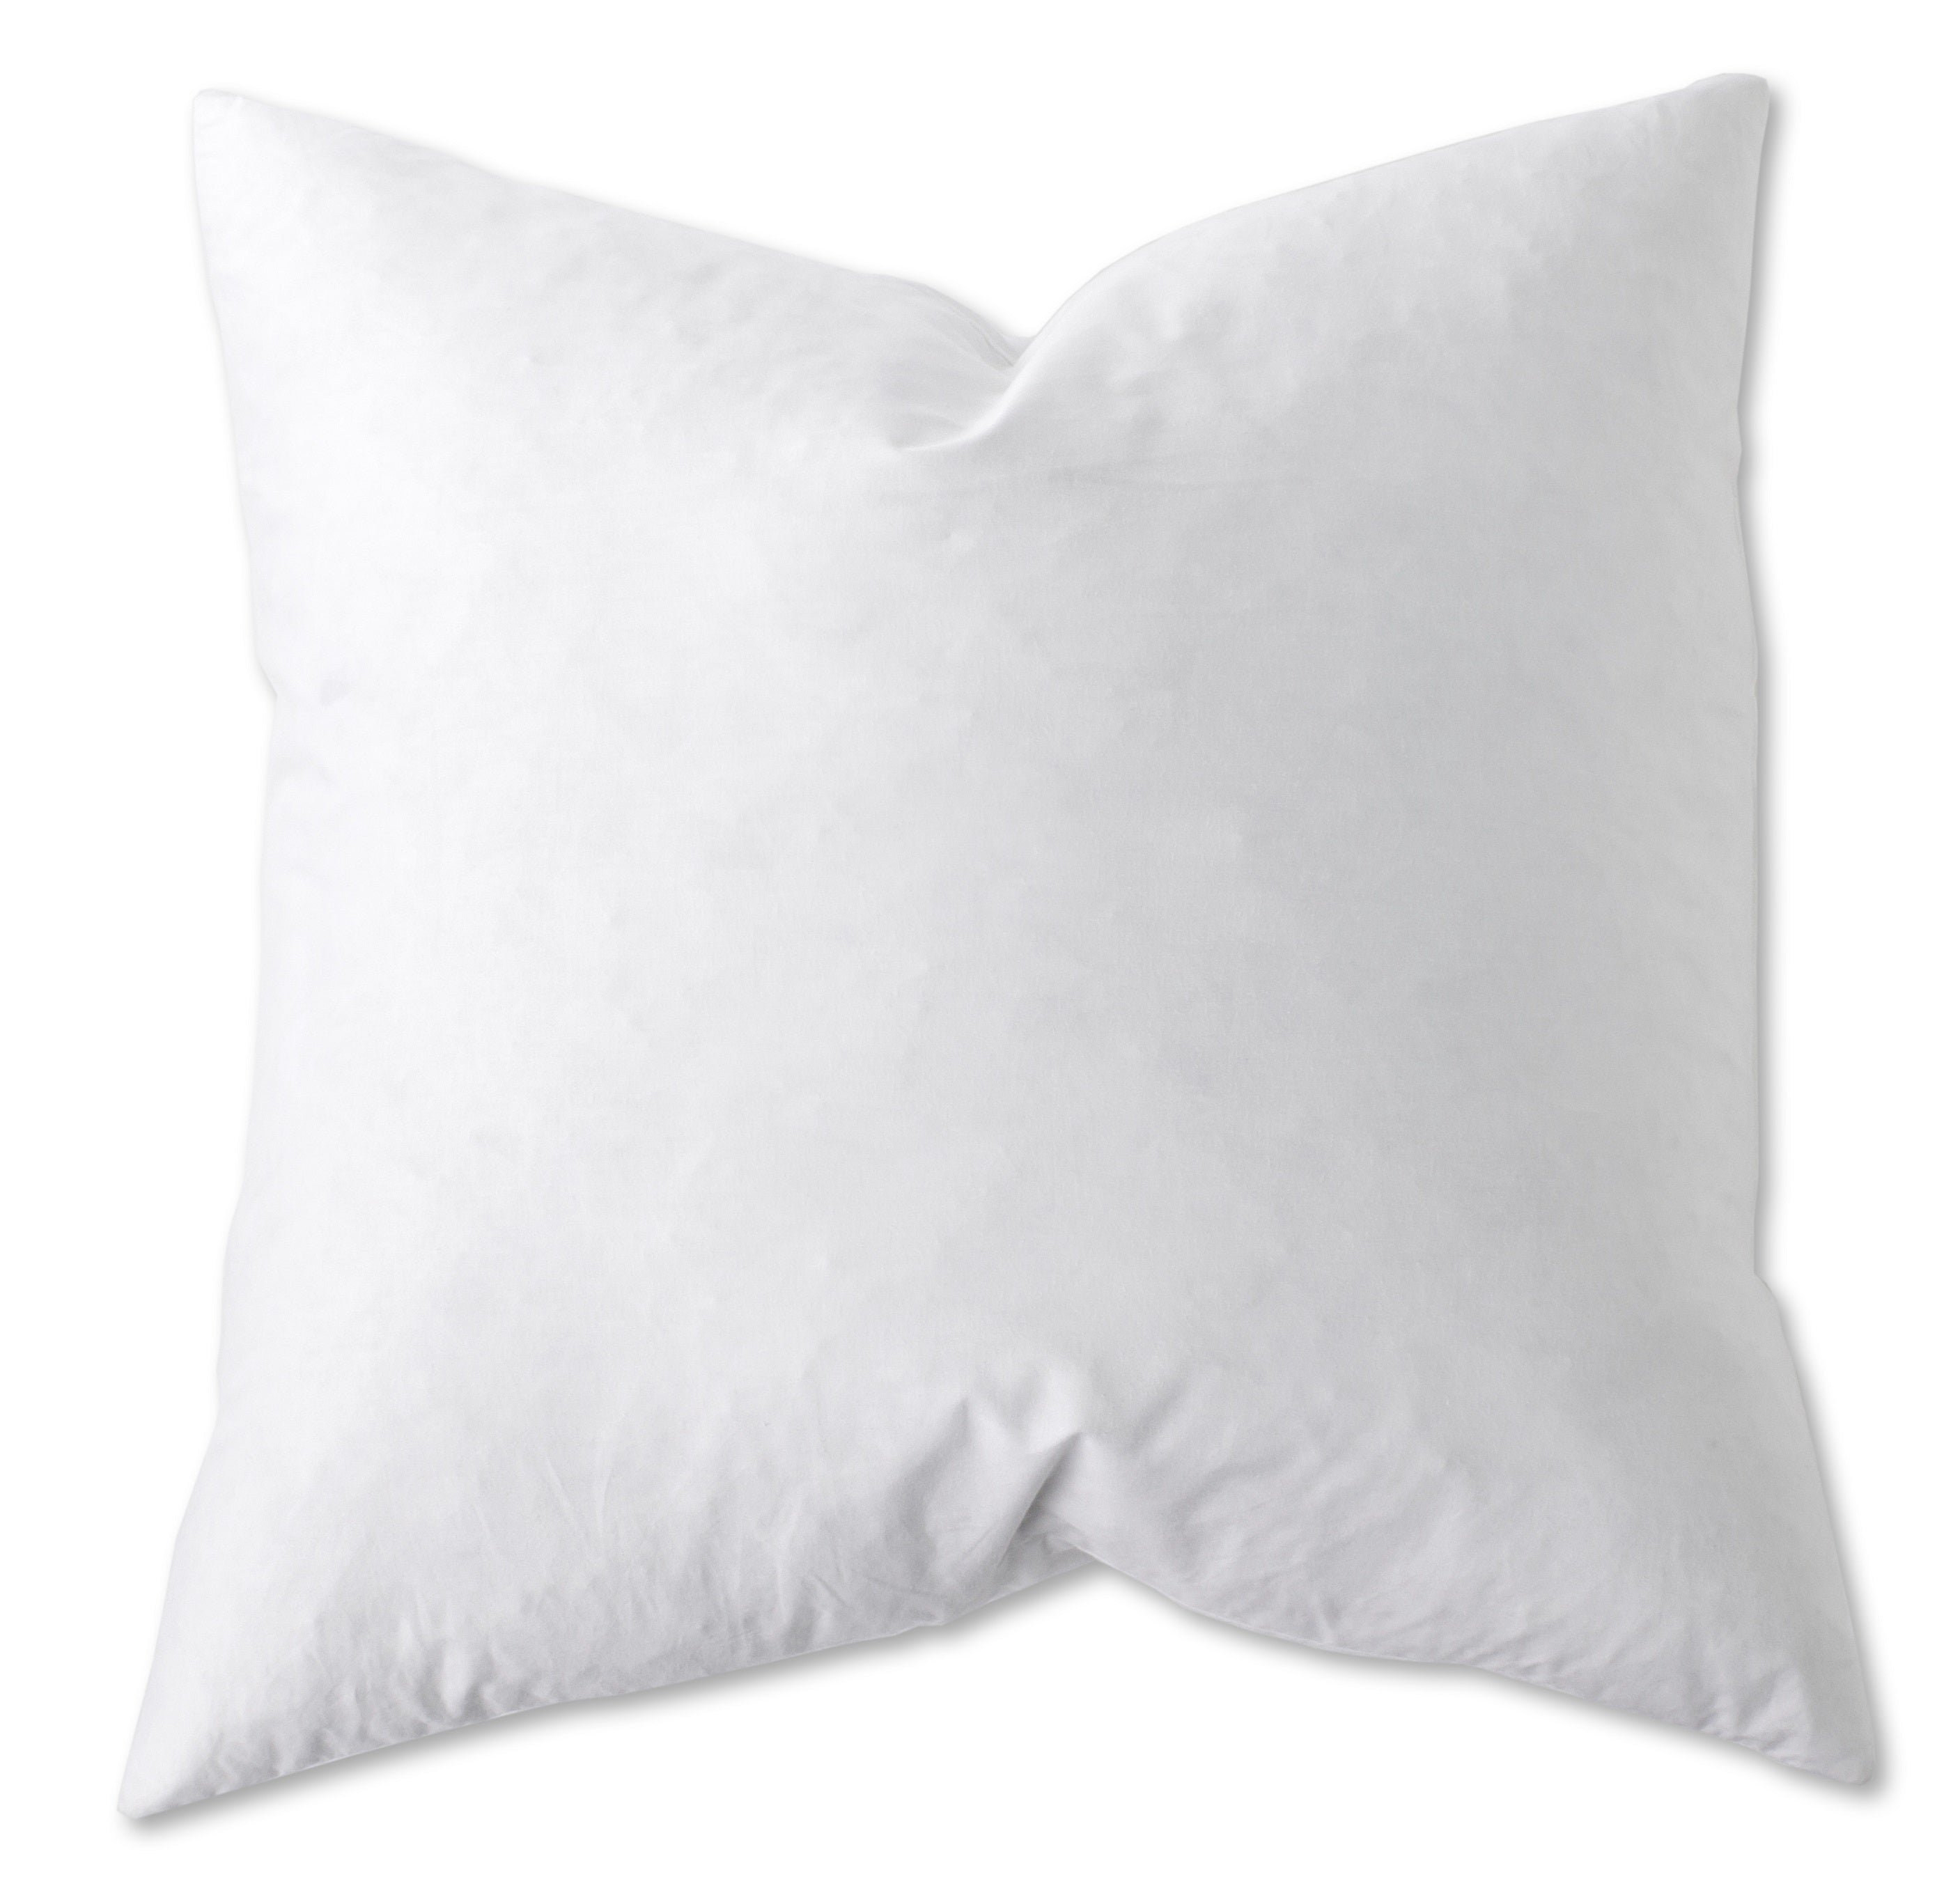 18x18 Pillow Form